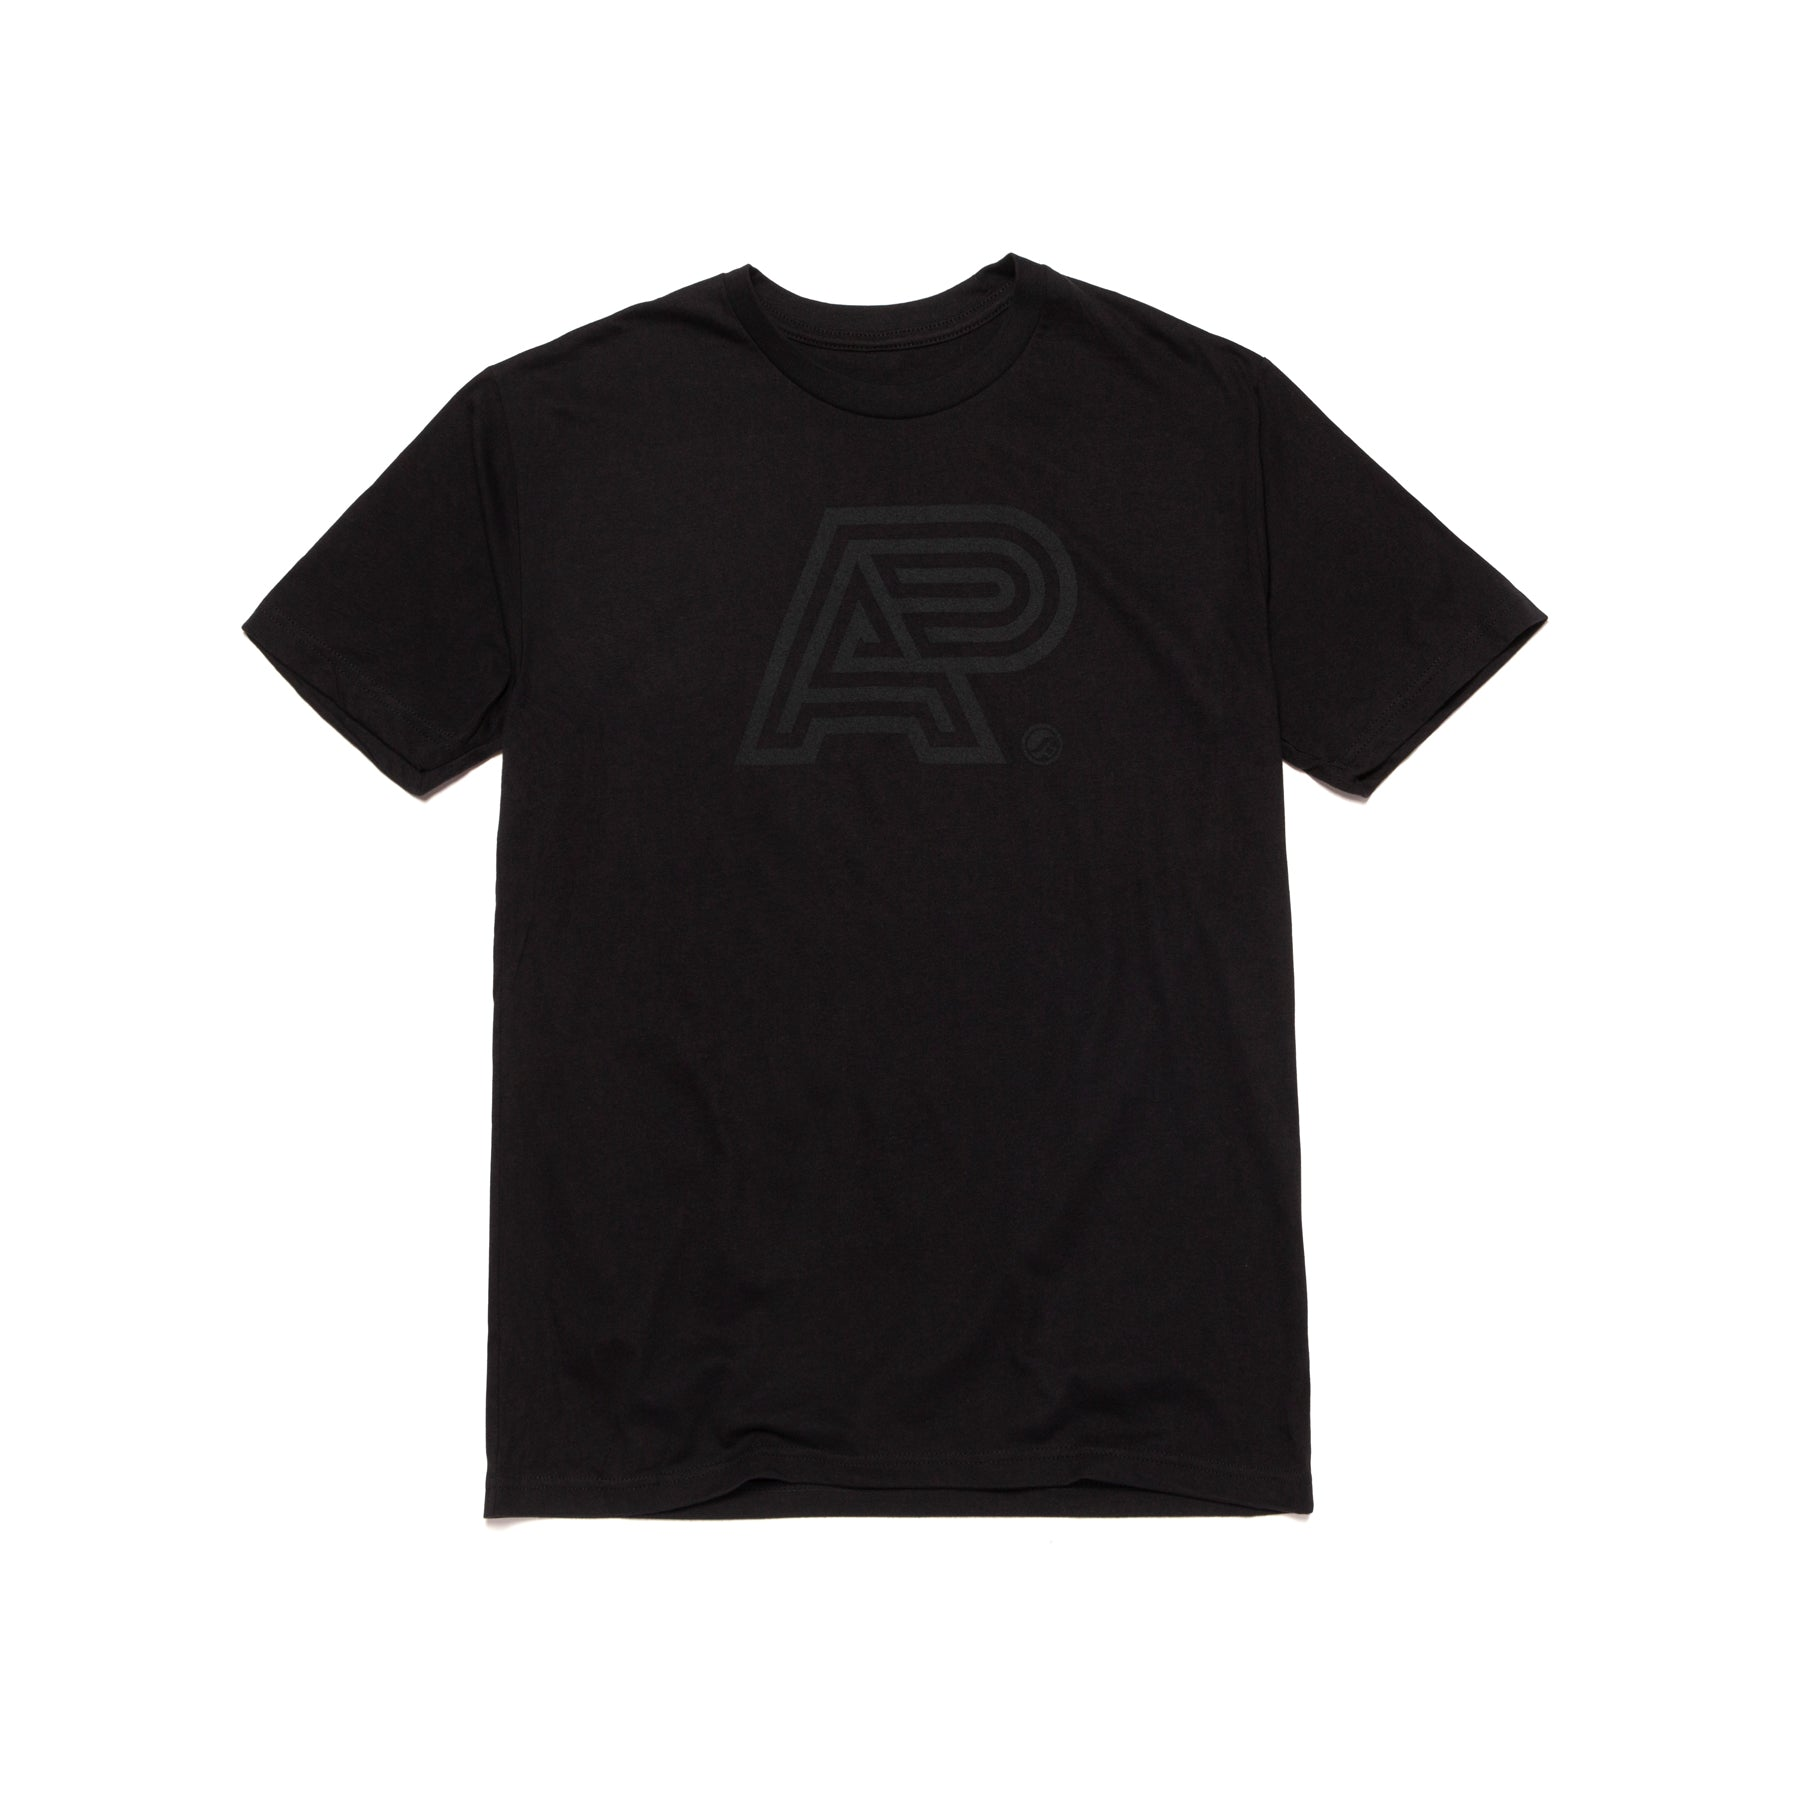 A&P SYR MARK TEE (BLACK)